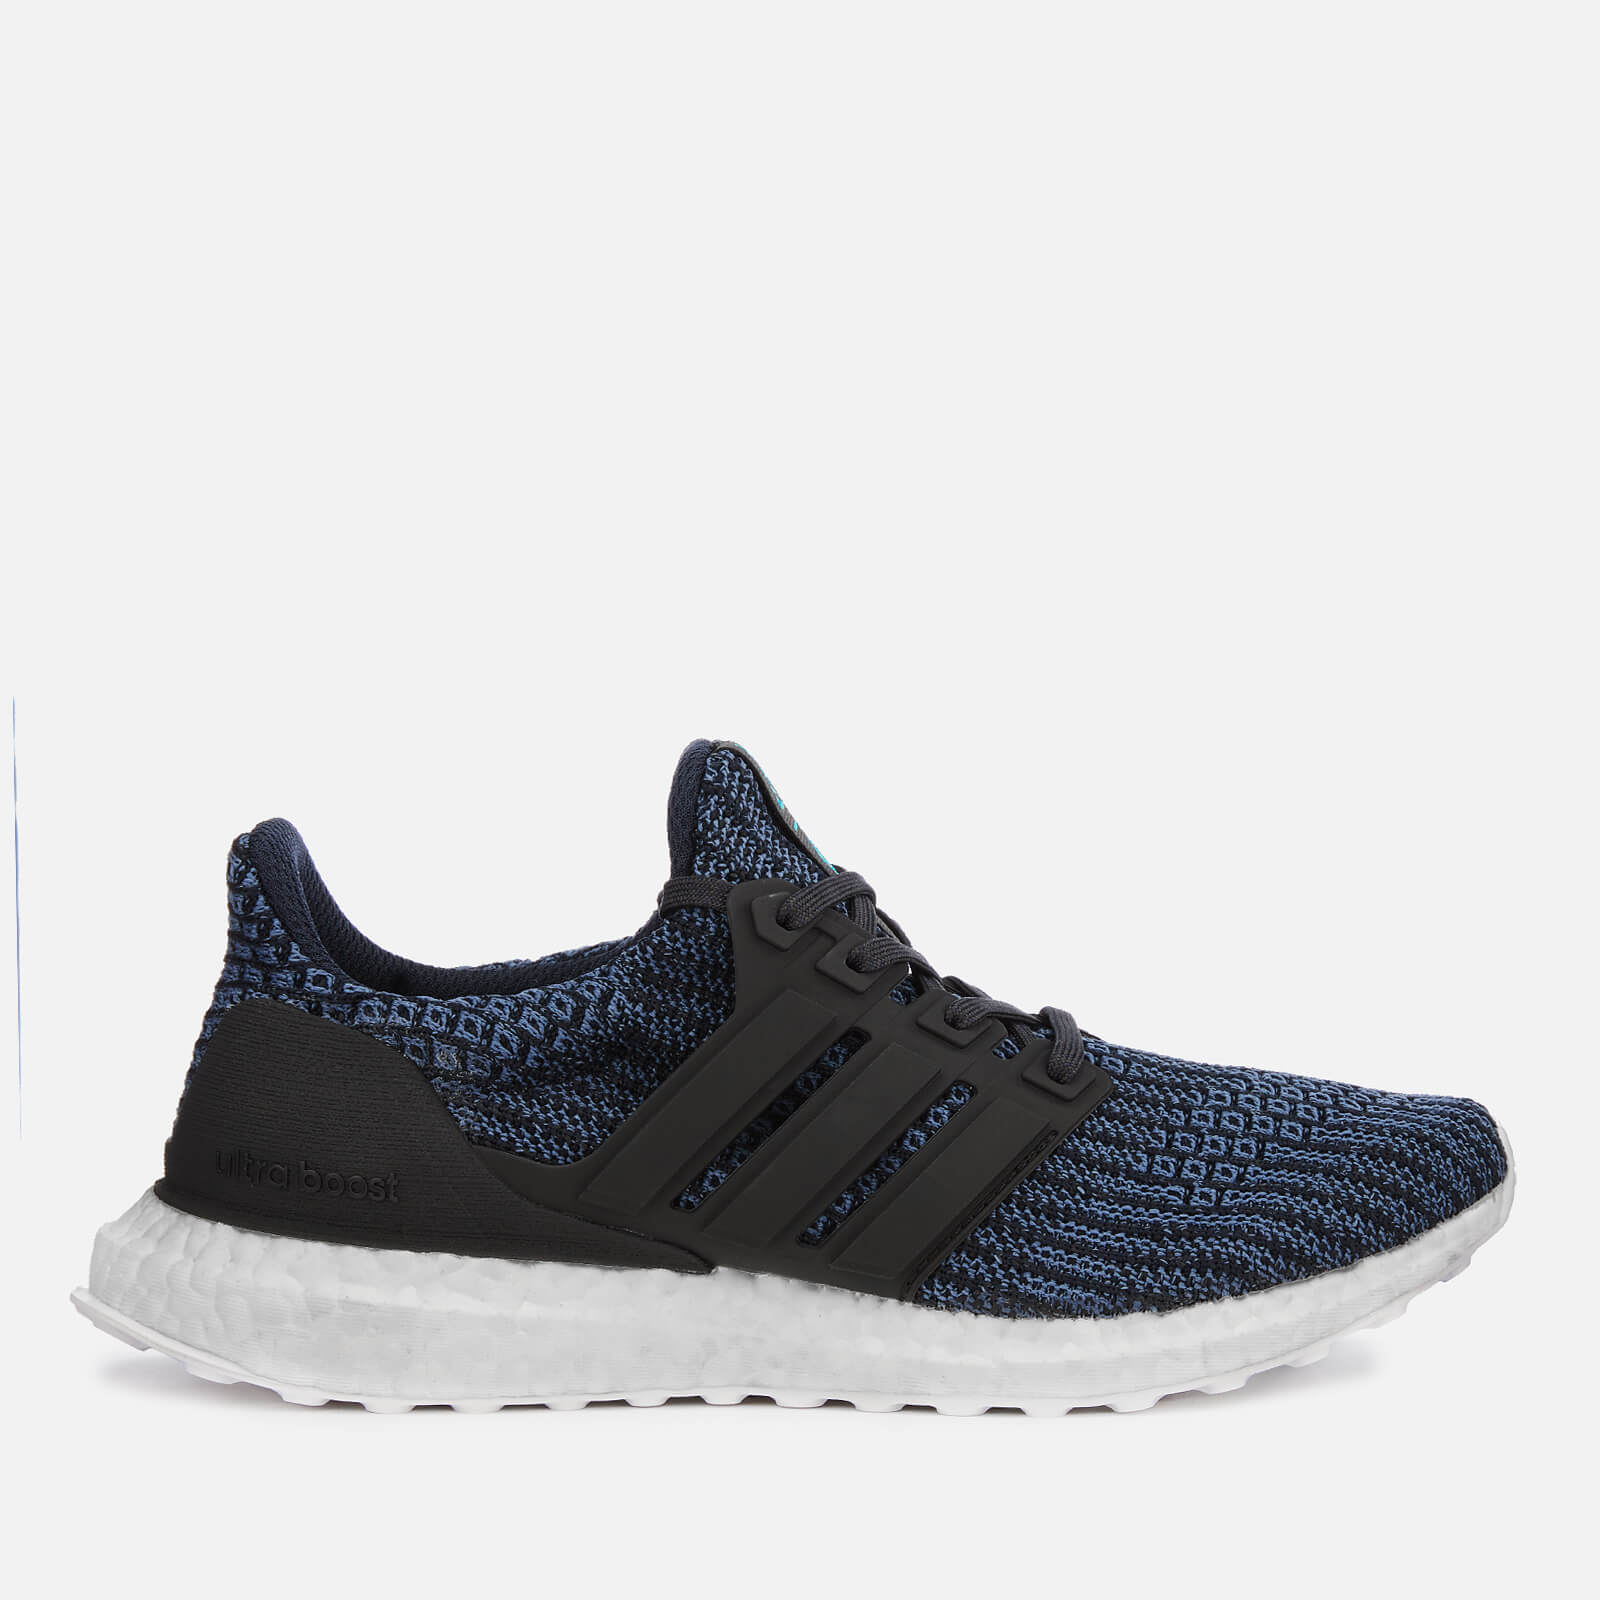 size 40 43c62 3609f adidas Women's Ultraboost Running Shoes - Parley Blue